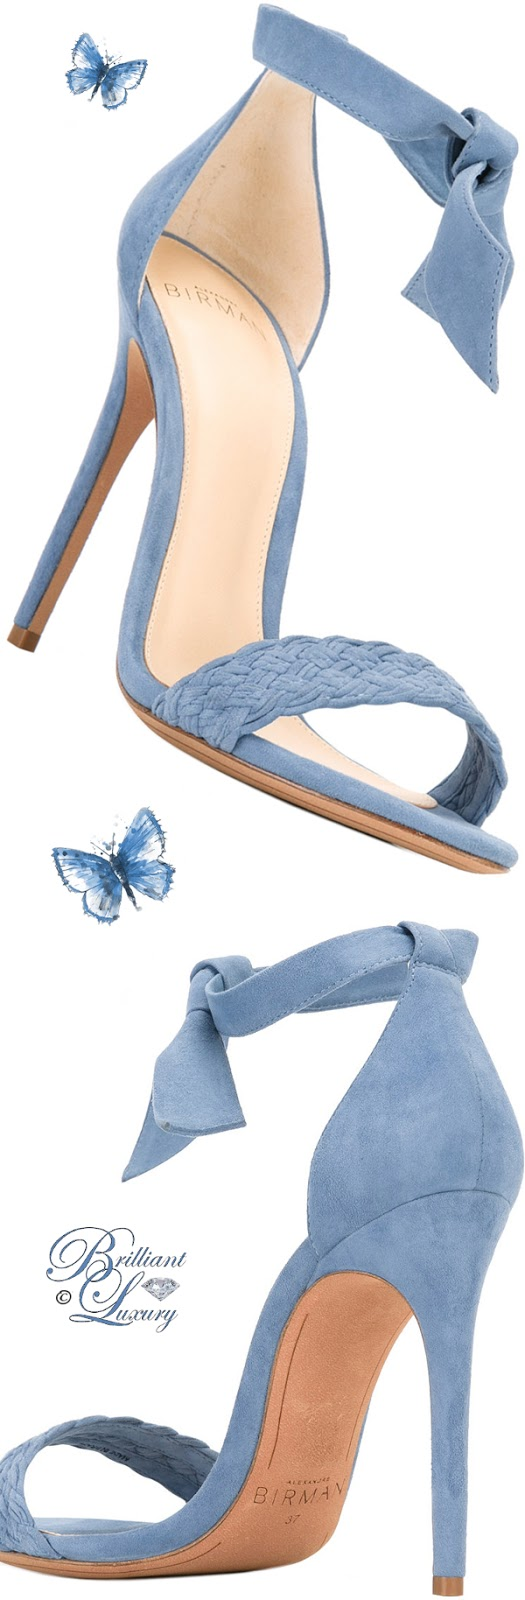 Brilliant Luxury ♦ Alexandre Birman Ankle Length Sandals